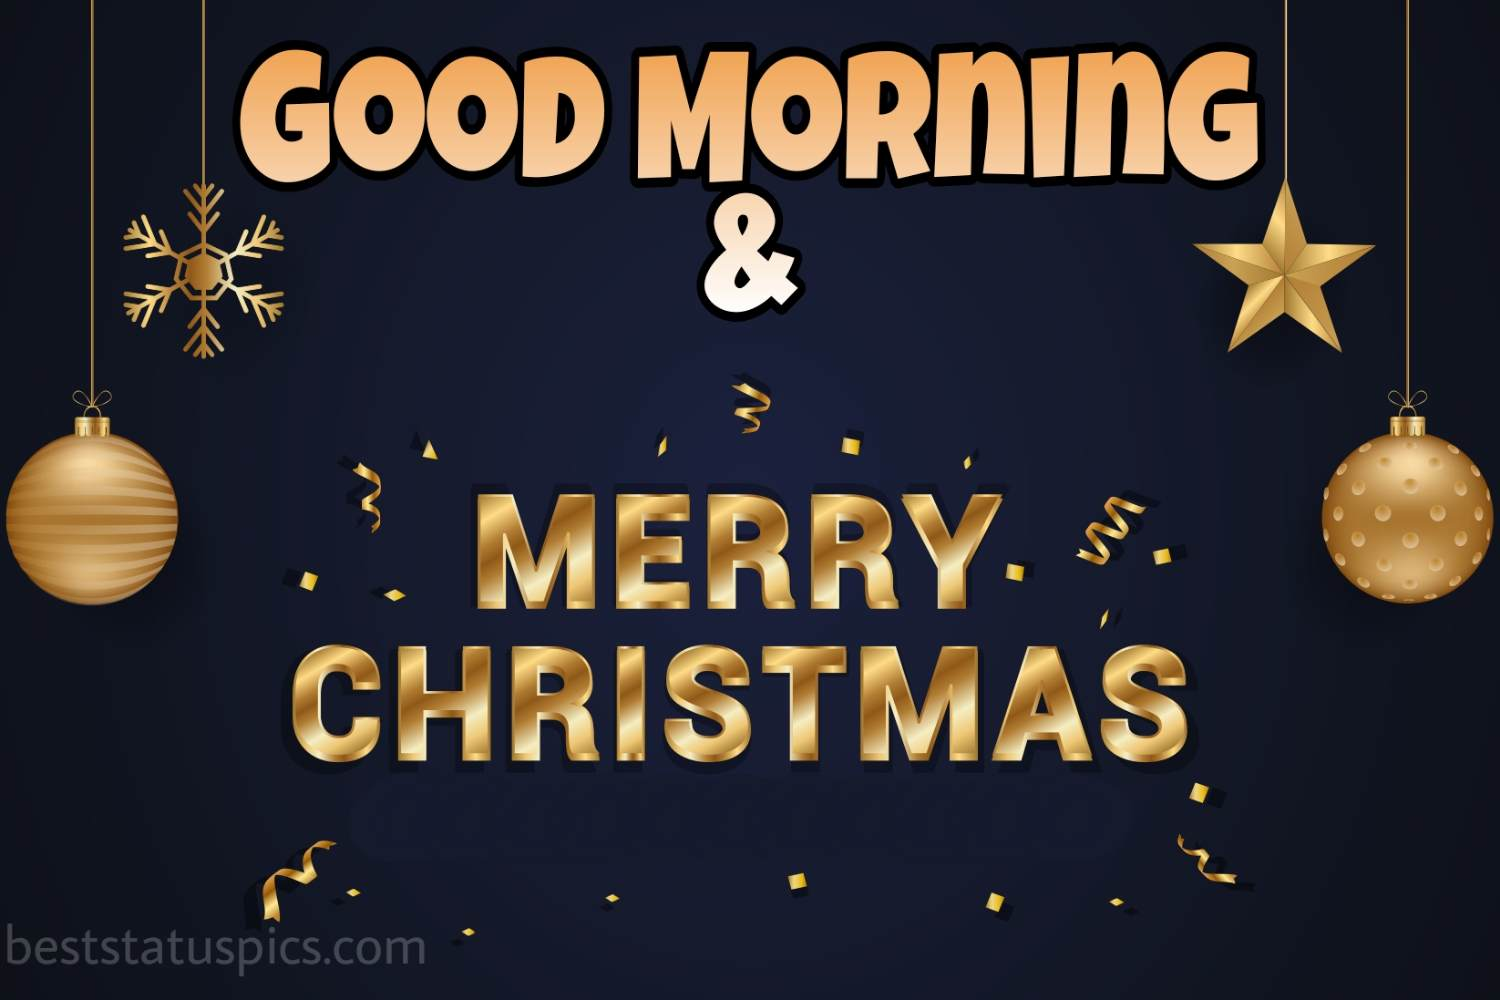 Good Morning Merry Christmas 2022 wishes images and card